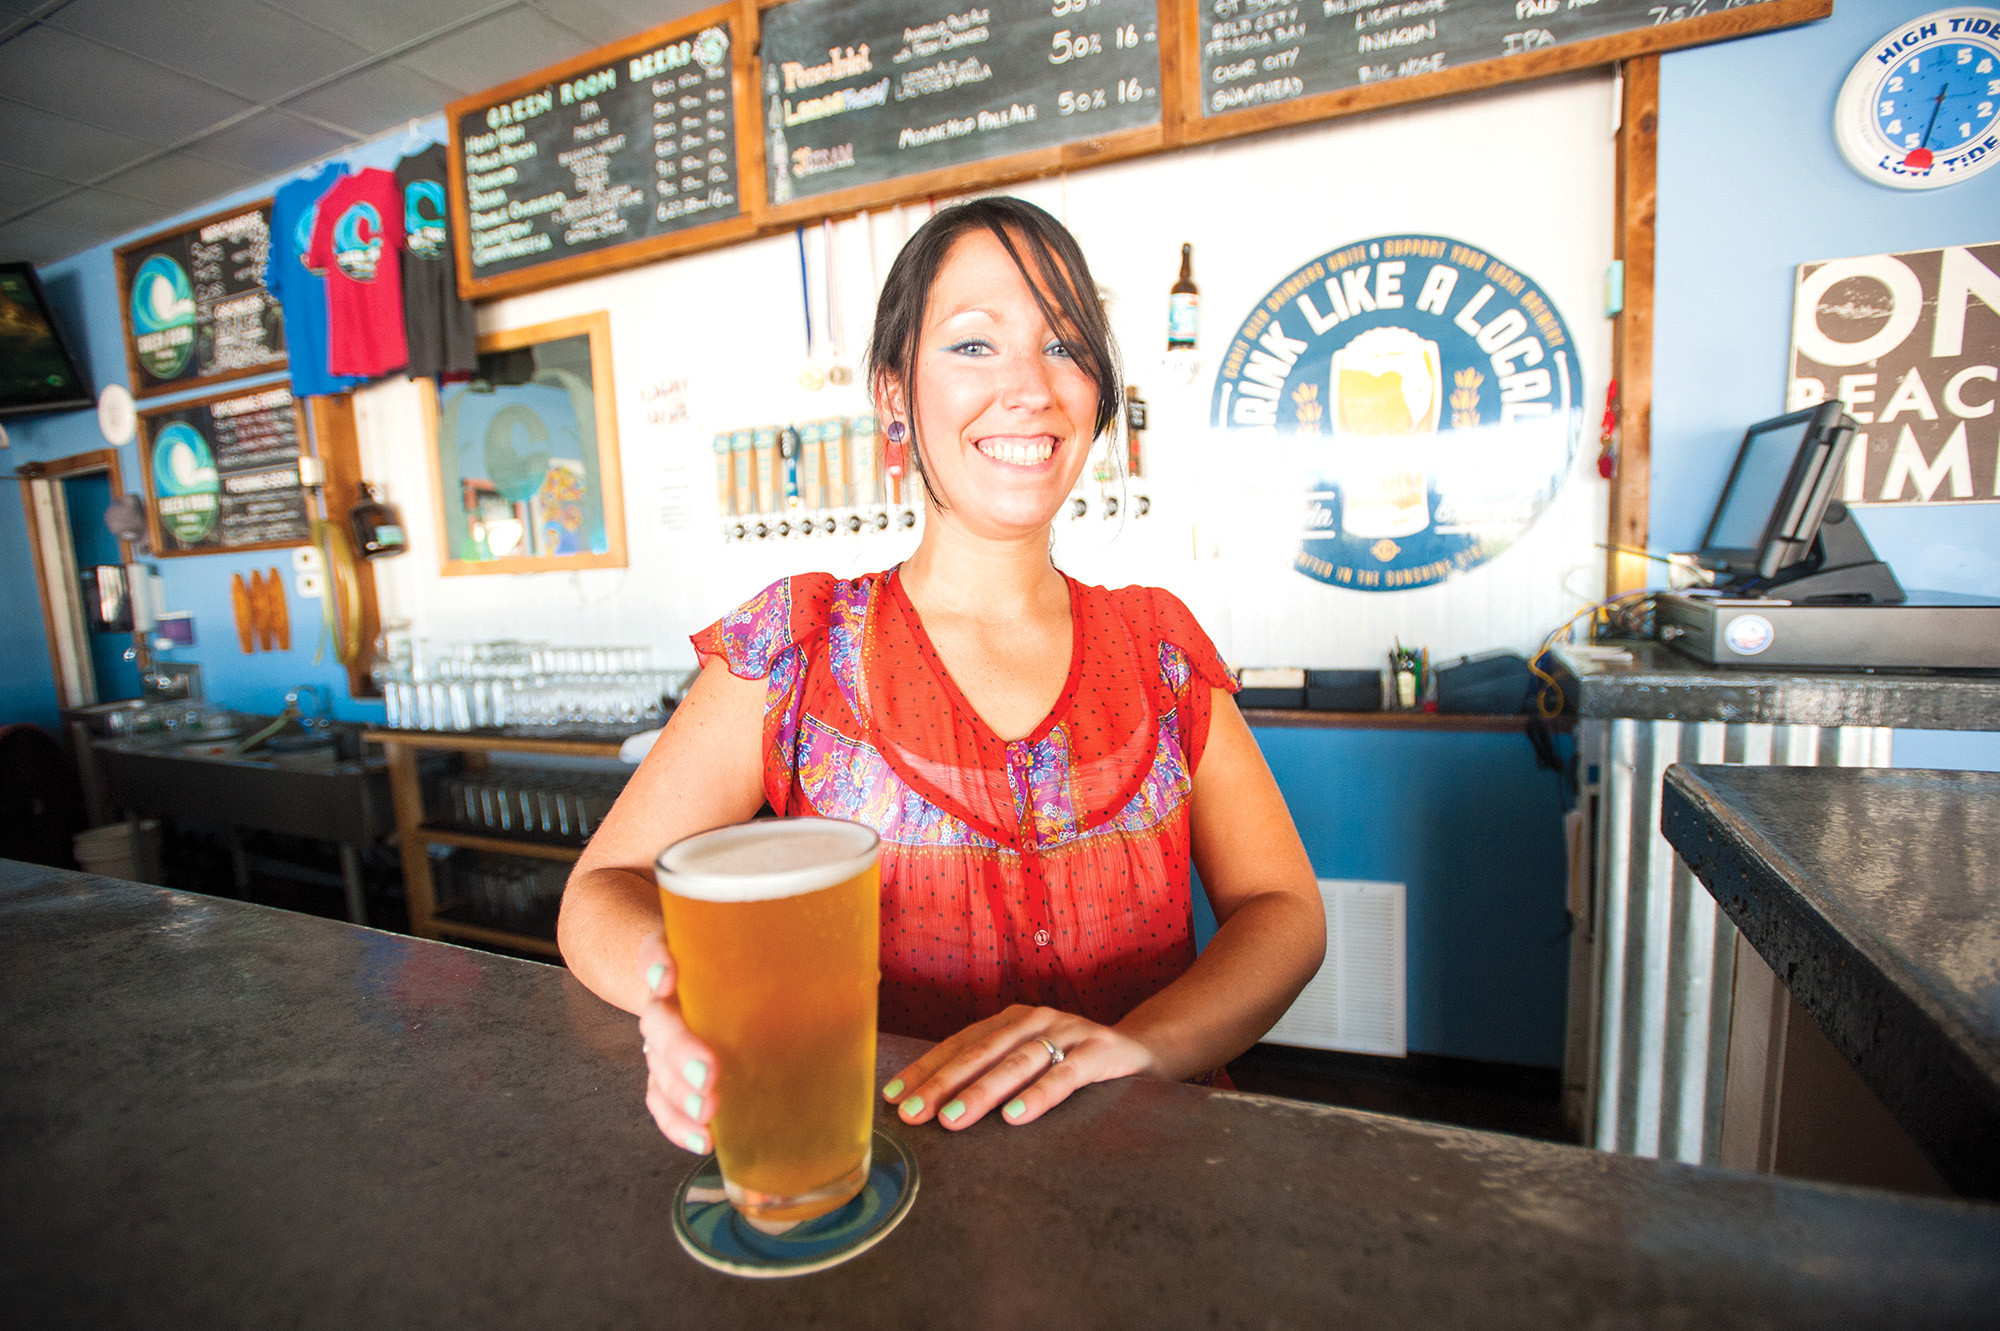 Bartender Christina White serves up a Lemon Fresh lemon ale with lactose and vanilla at Green Room Brewing.